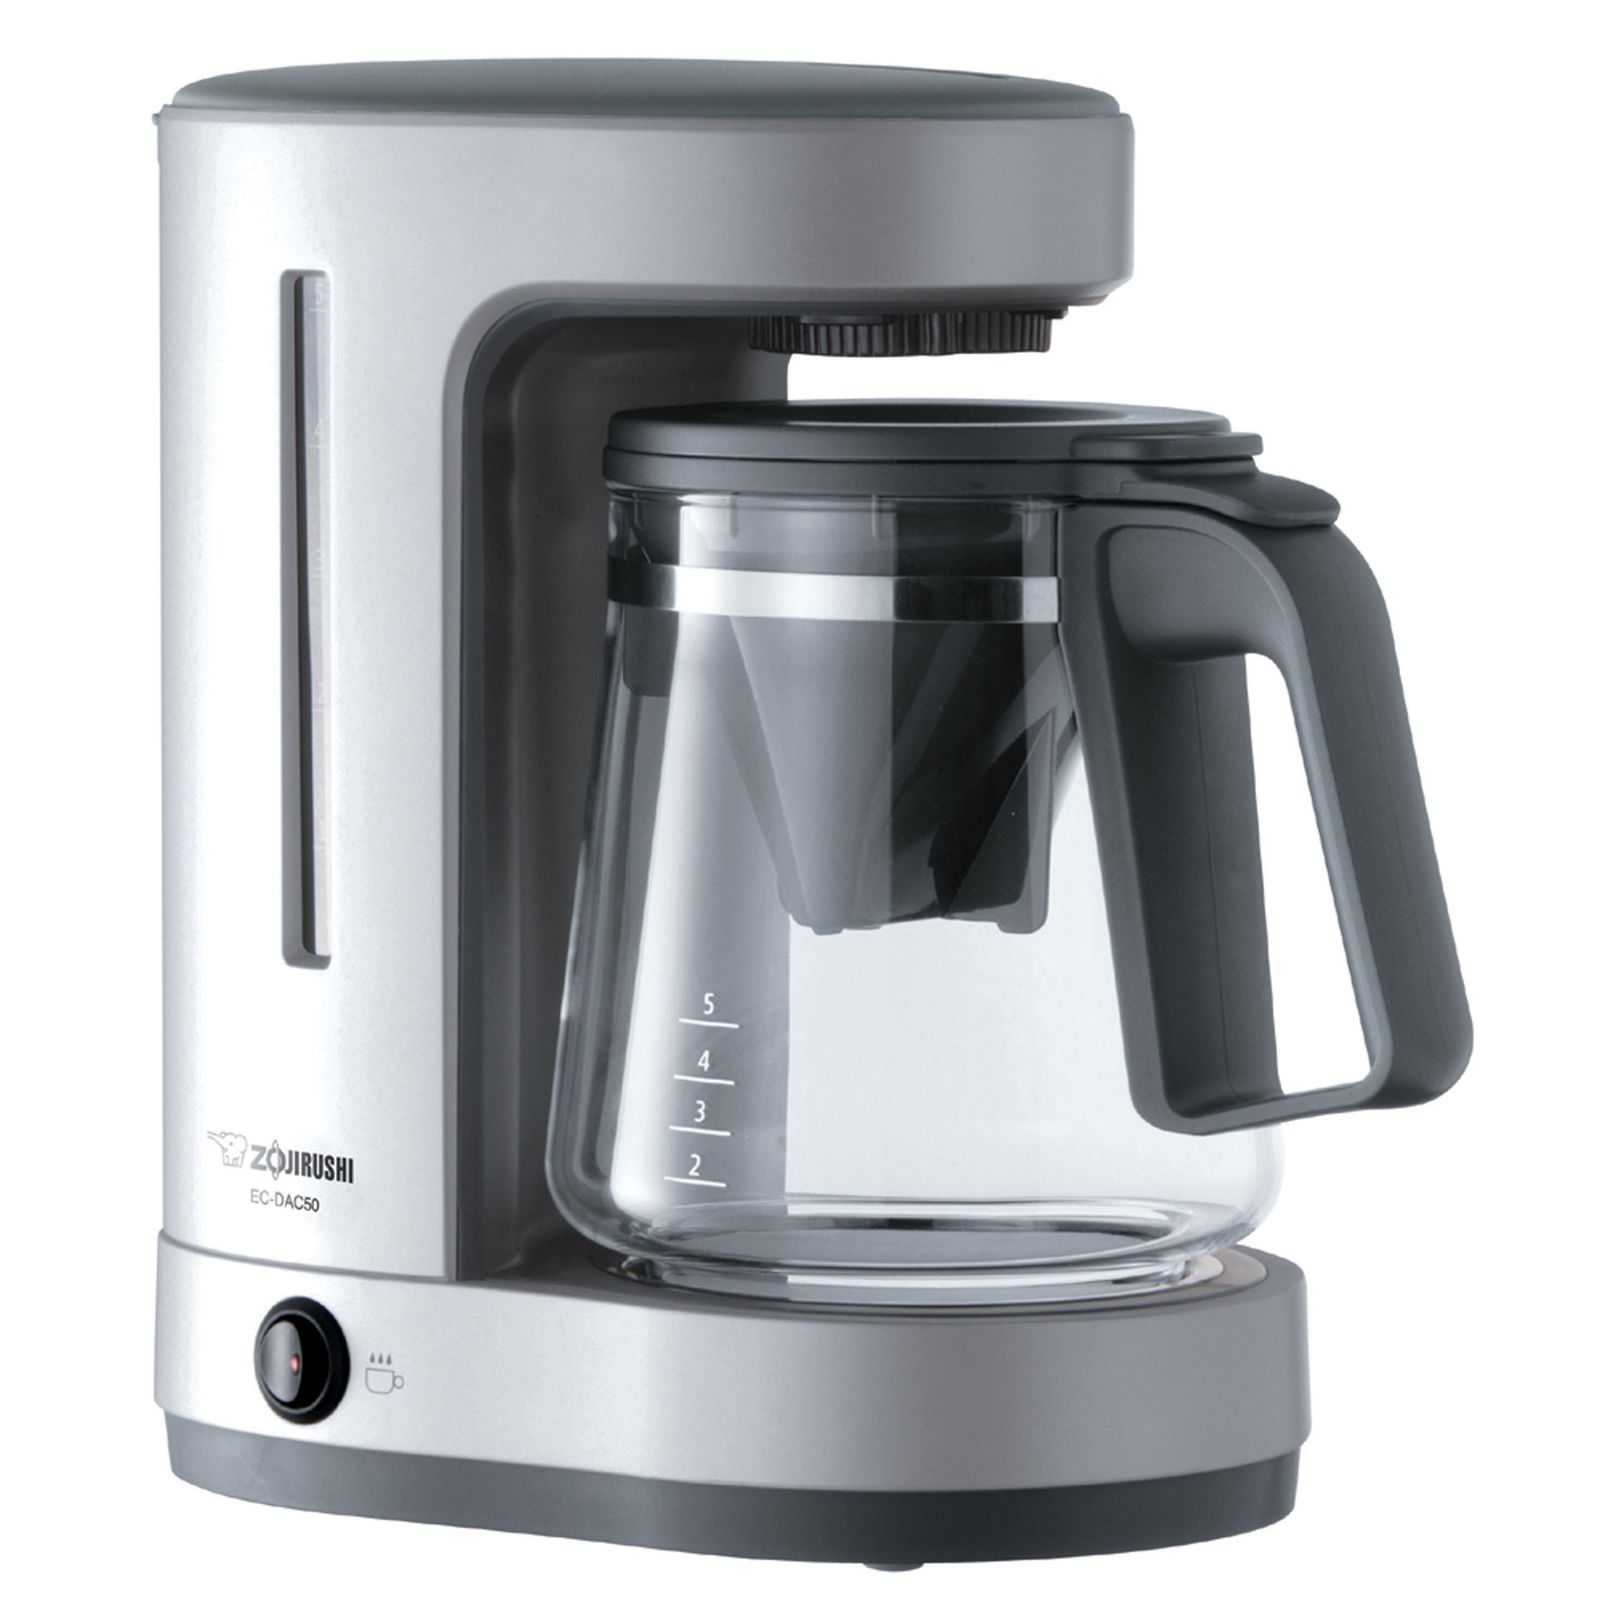 Zojirushi ZUTTO Coffee Maker #EC-DAC50 Review